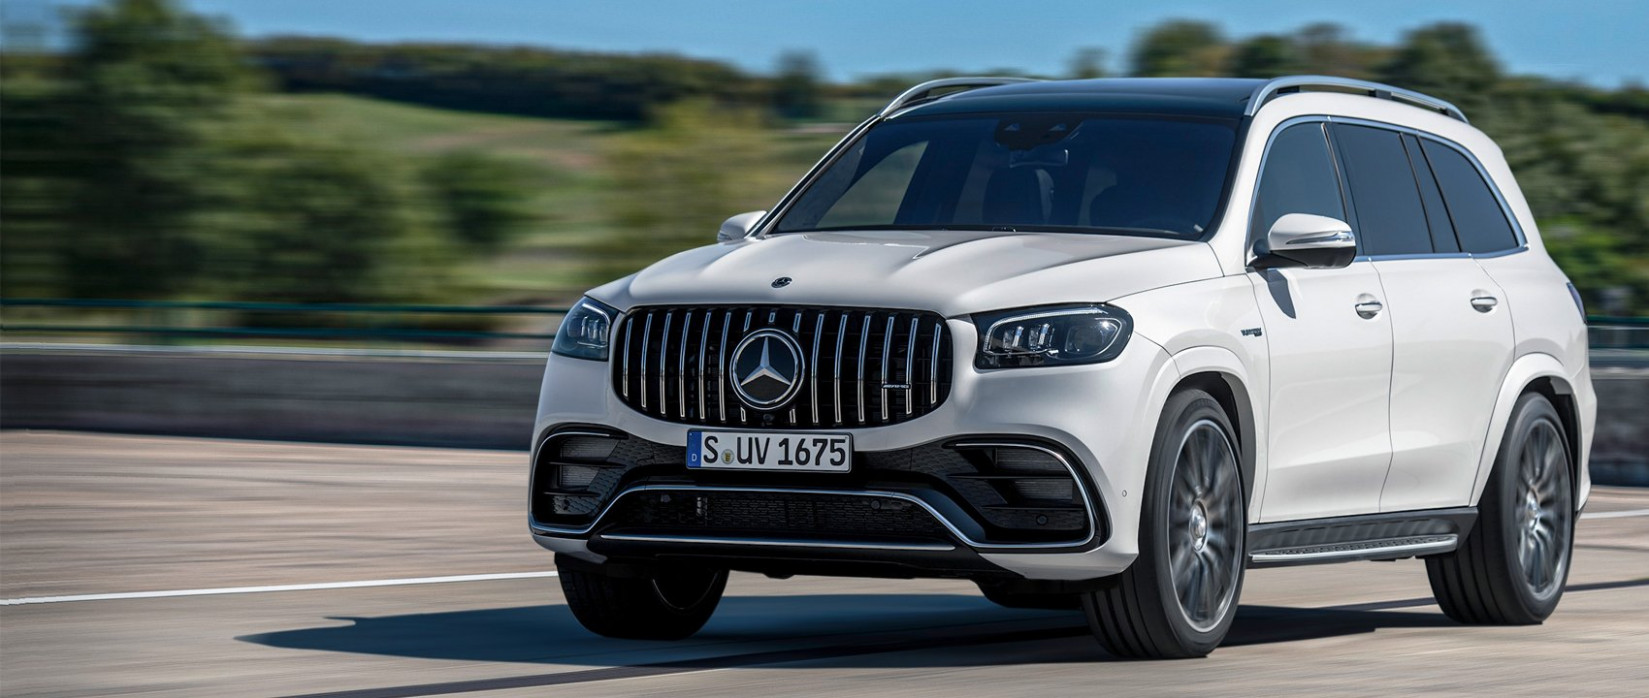 The new Mercedes-AMG GLS 12 12MATIC+